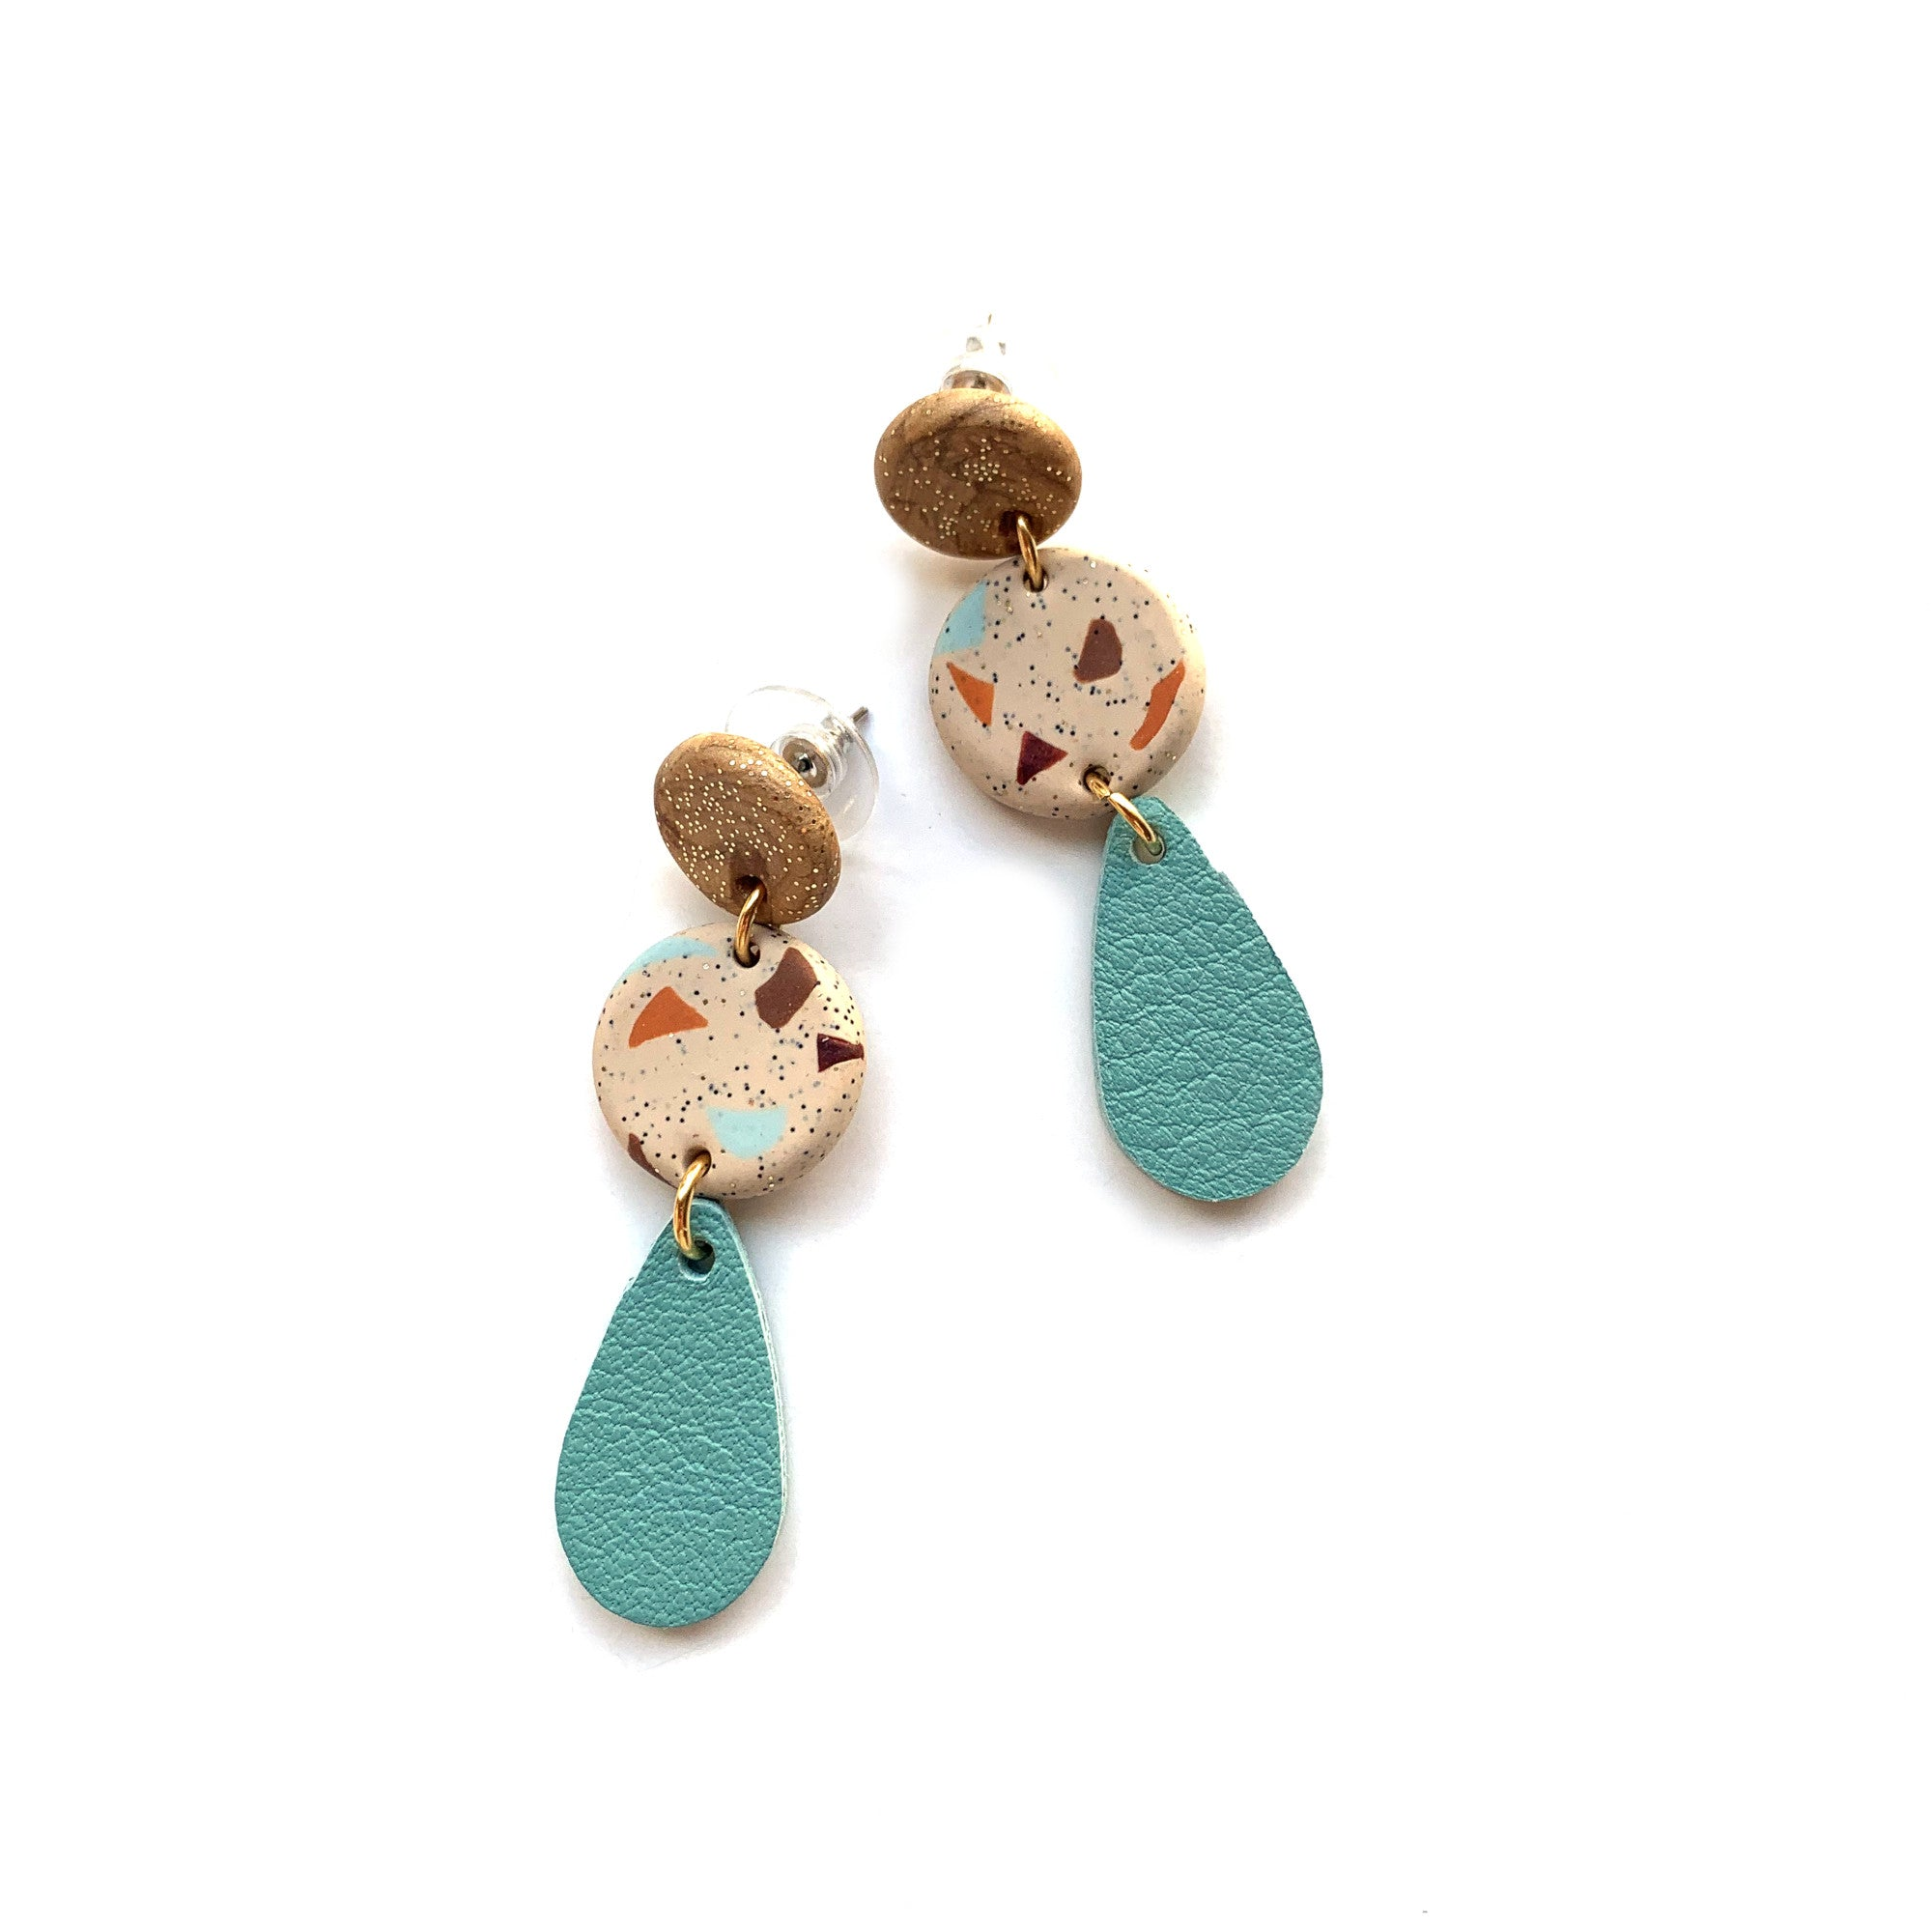 Teardrop earrings by Two boss beads